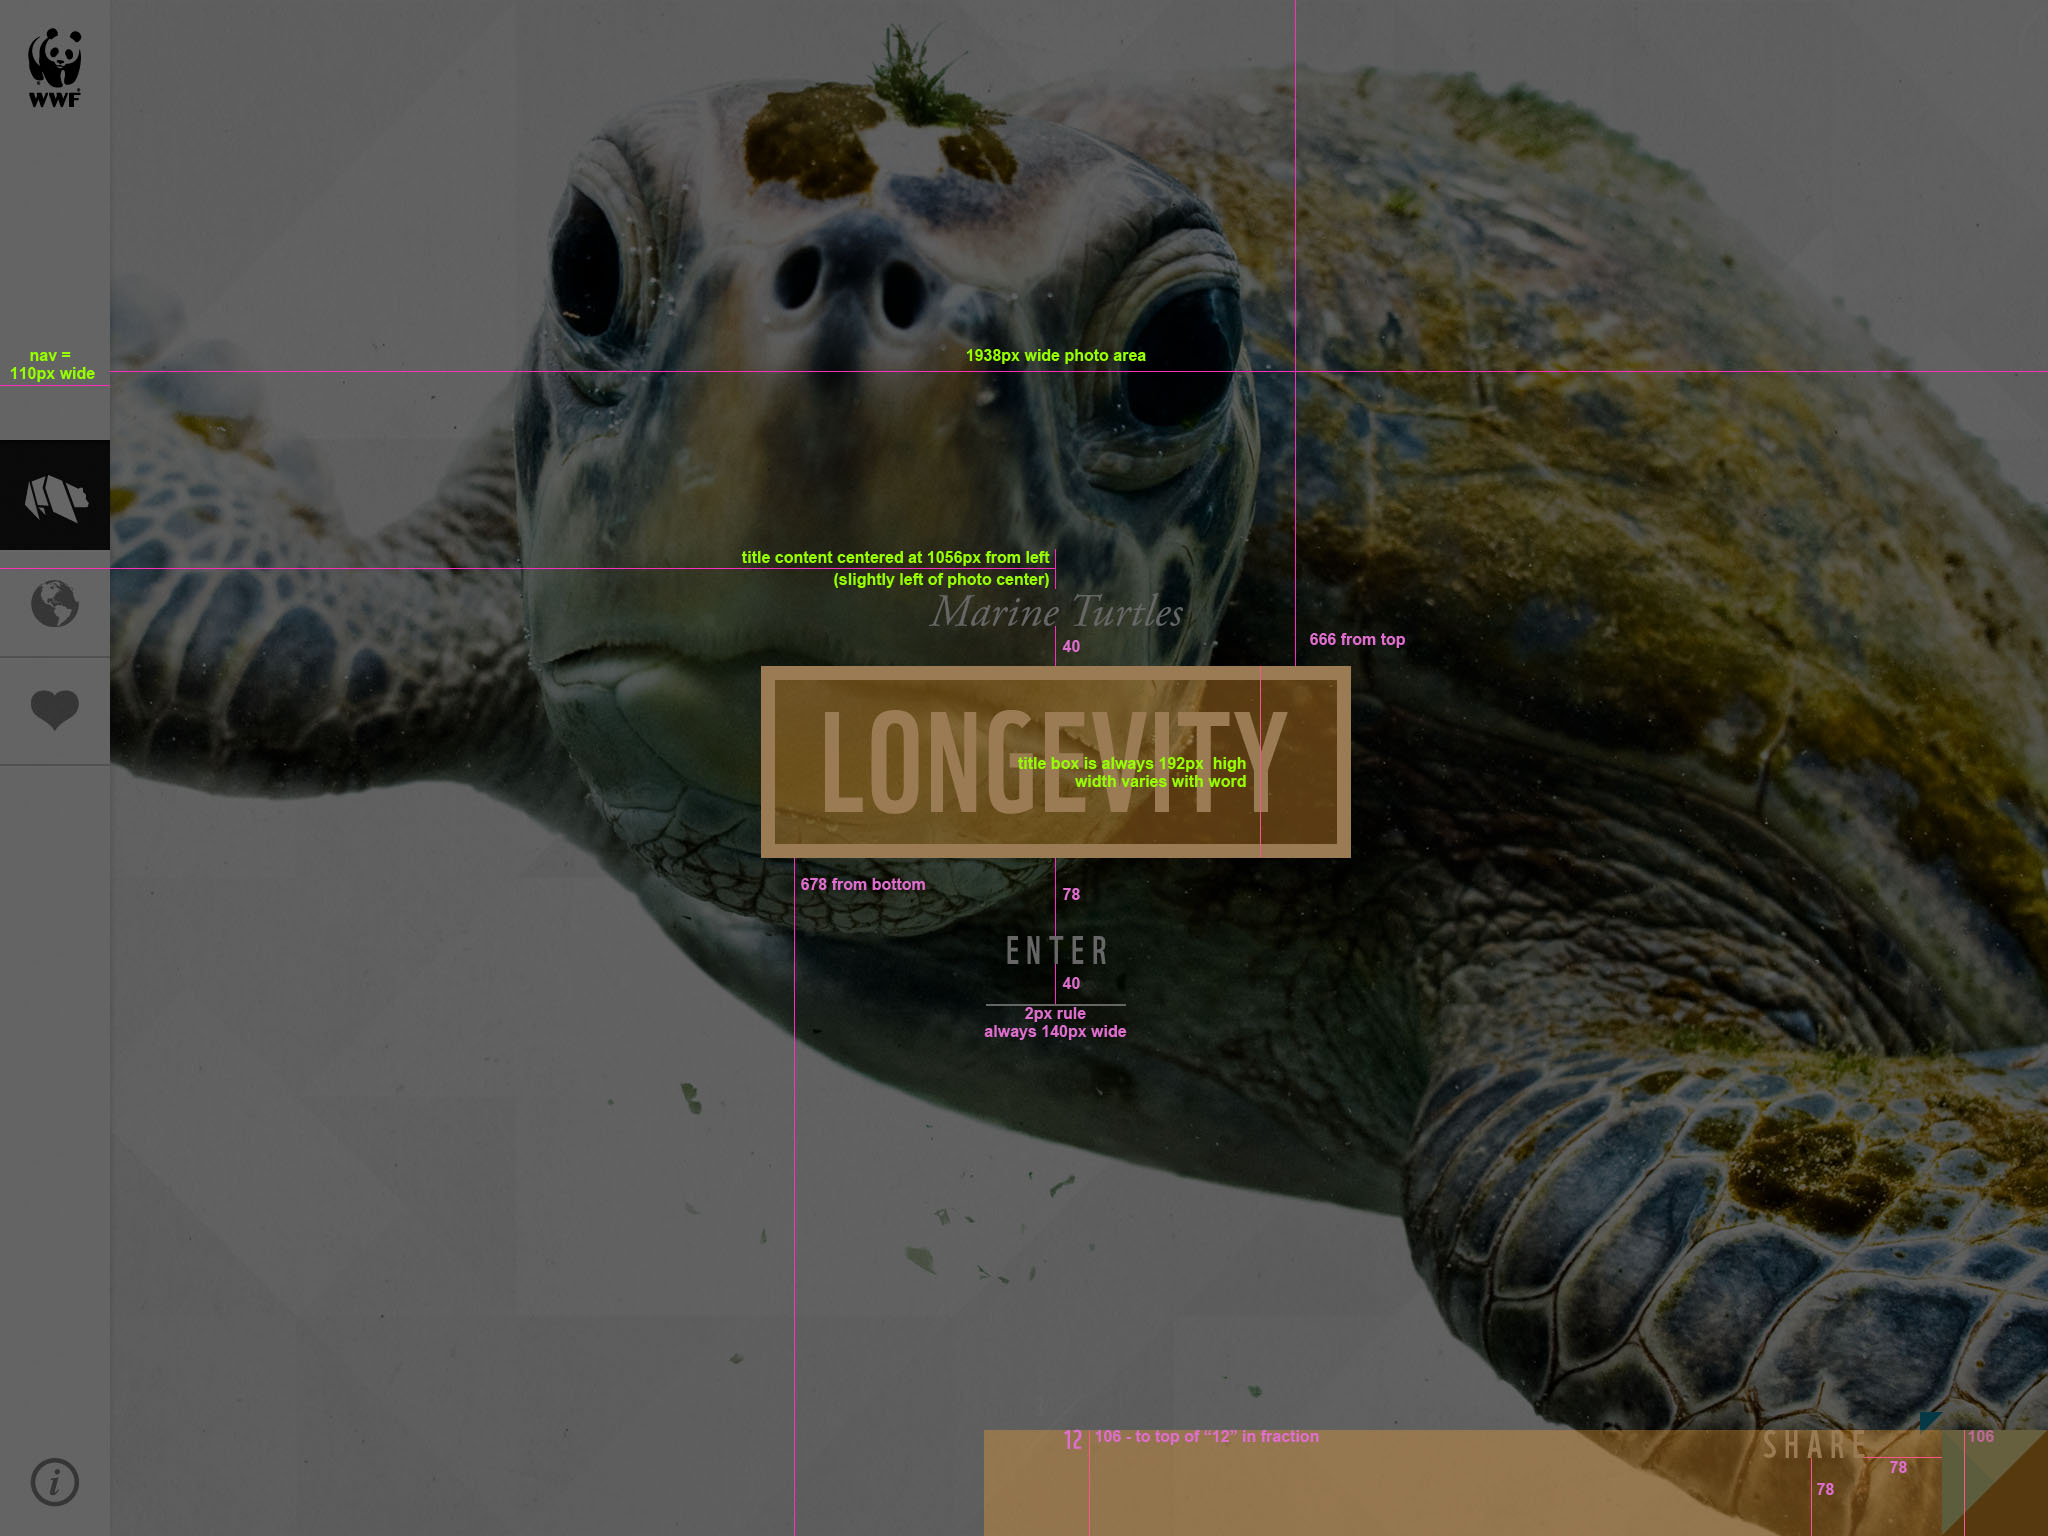 WWF_PortraitNav_turtle_titlescreen_SPECS